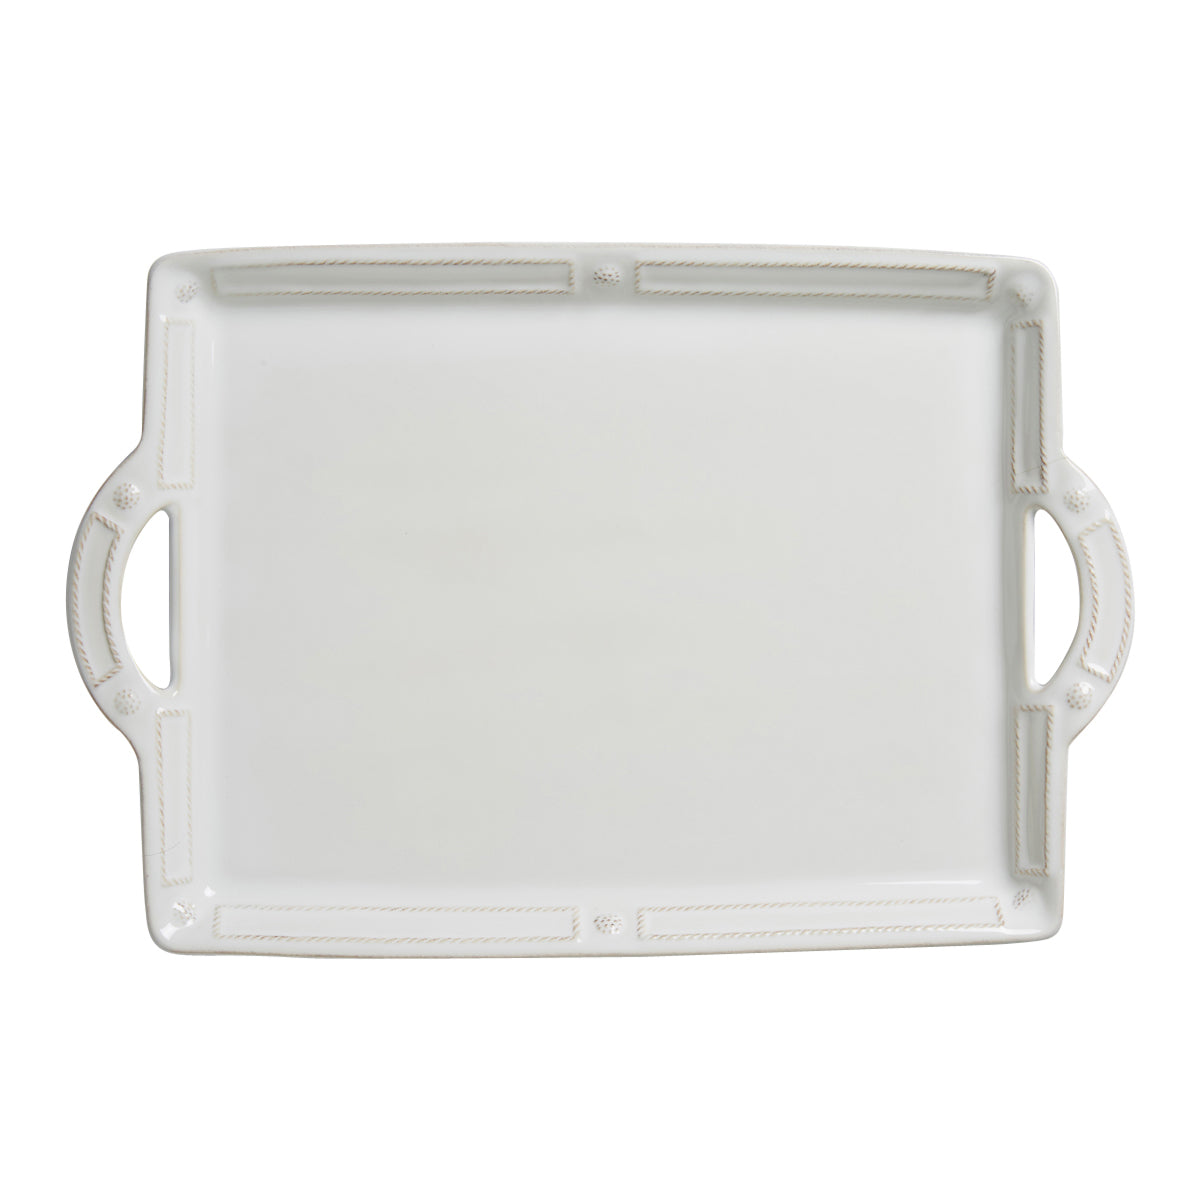 B & T French Panel Whitewash Serveware